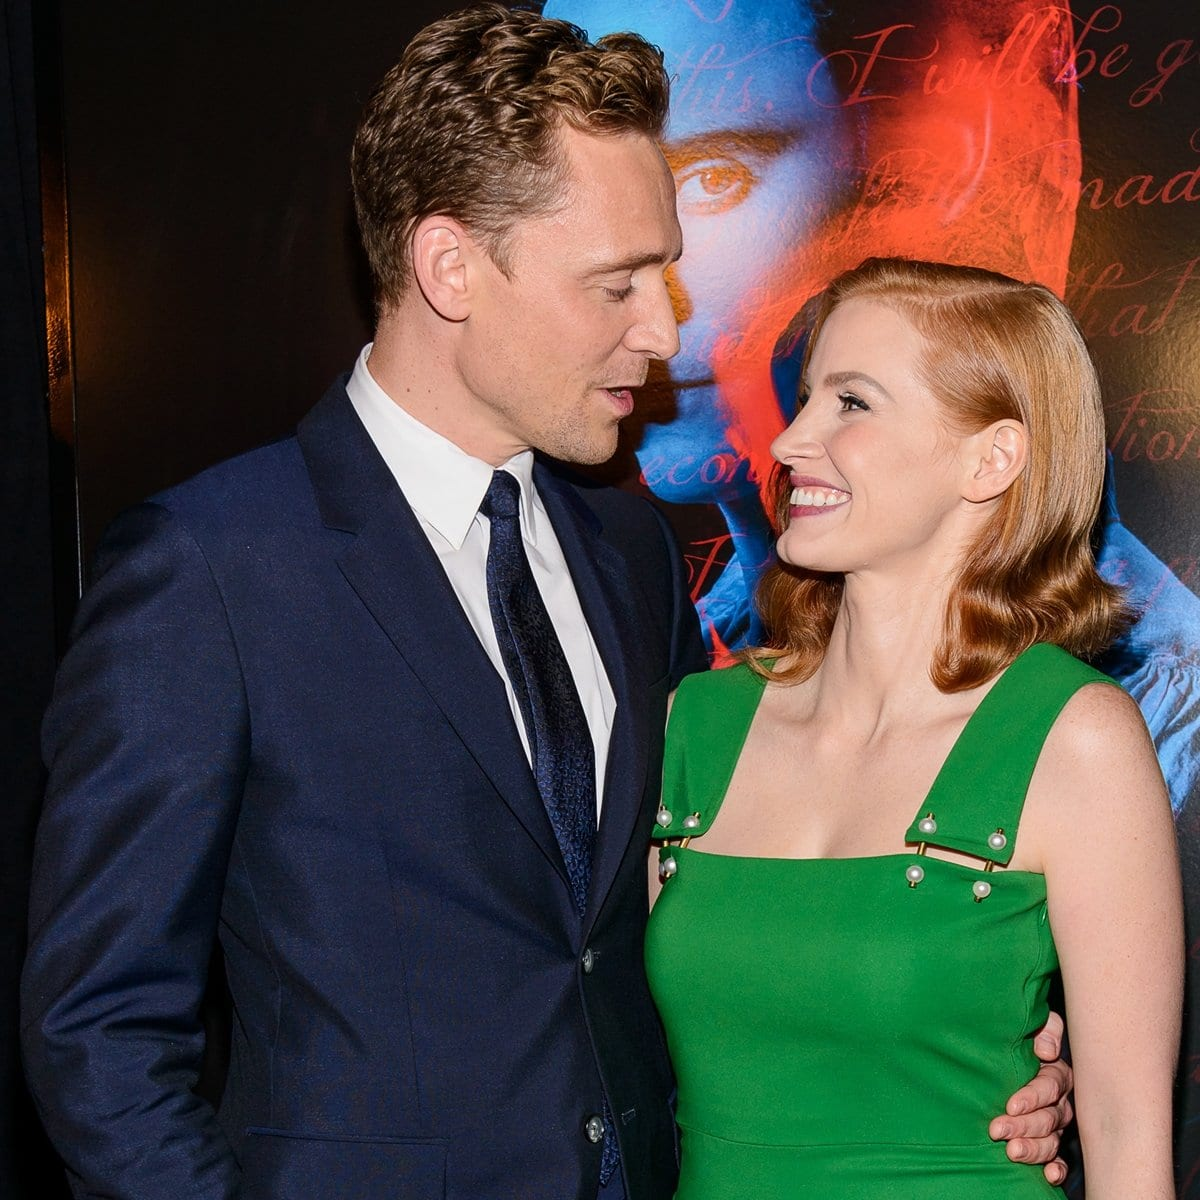 Jessica Chastin has denied dating Tom Hiddleston and insists she does not date other actors